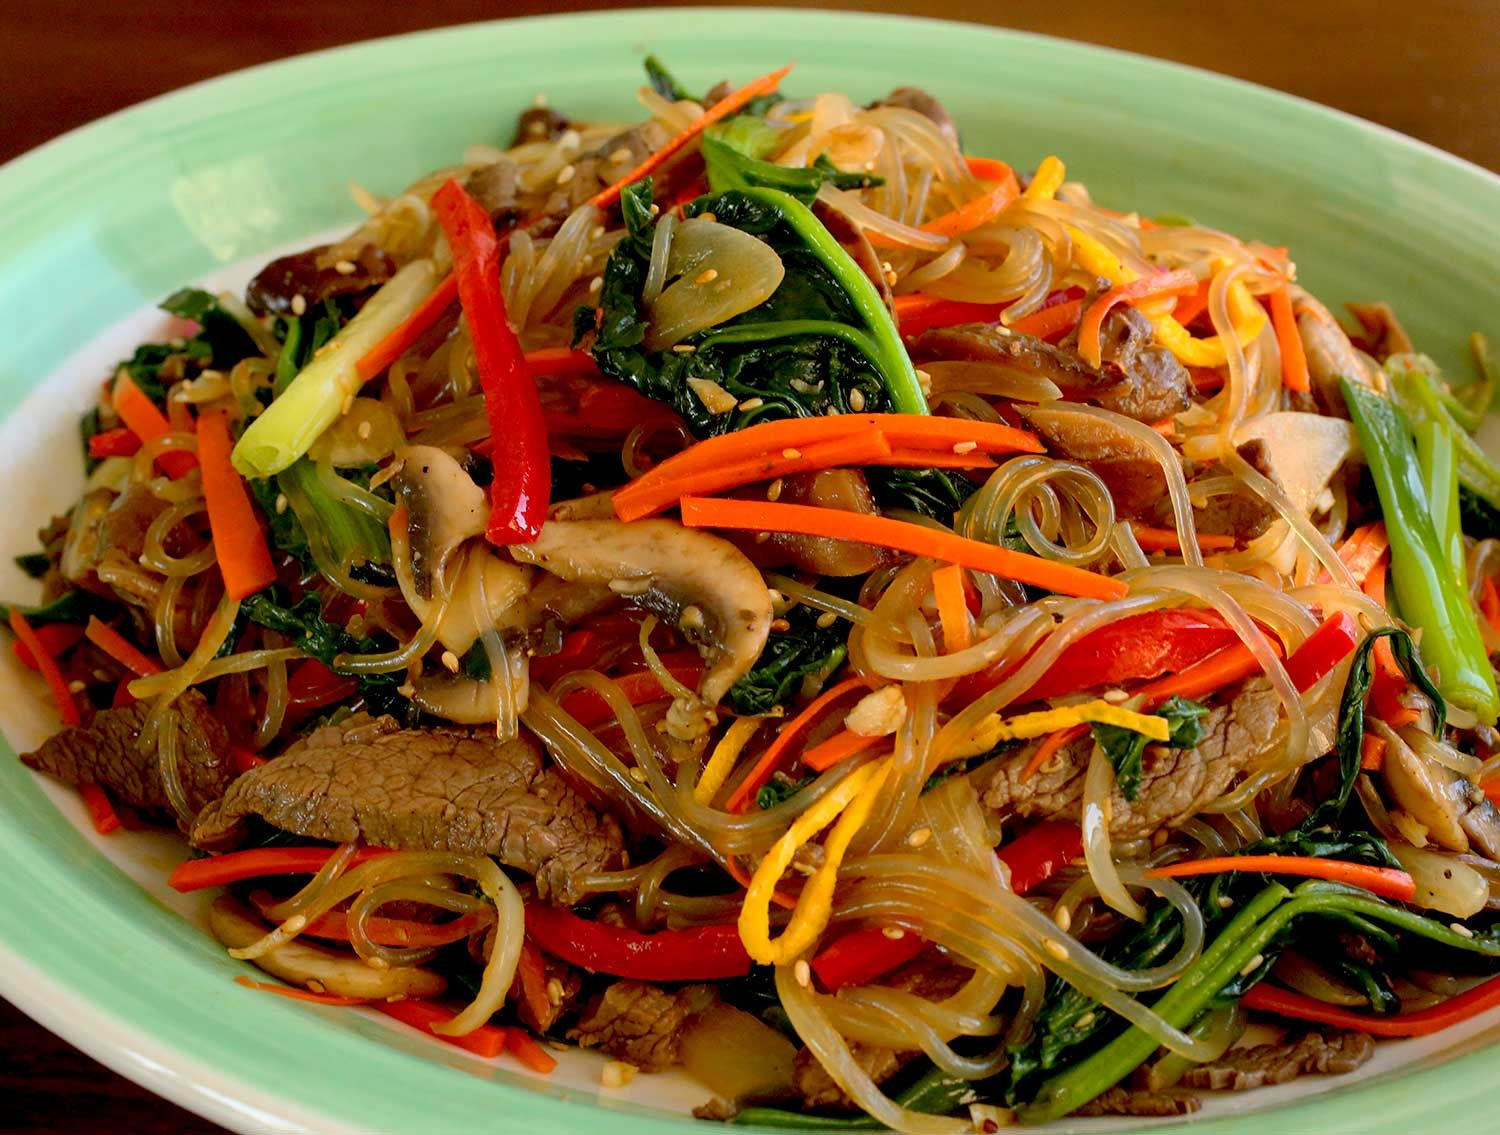 Japchae Sweet Potato Starch Noodles Stir Fried With Vegetables Recipe Vegetable Recipes Vegetable Dishes Recipes Spiral Vegetable Recipes